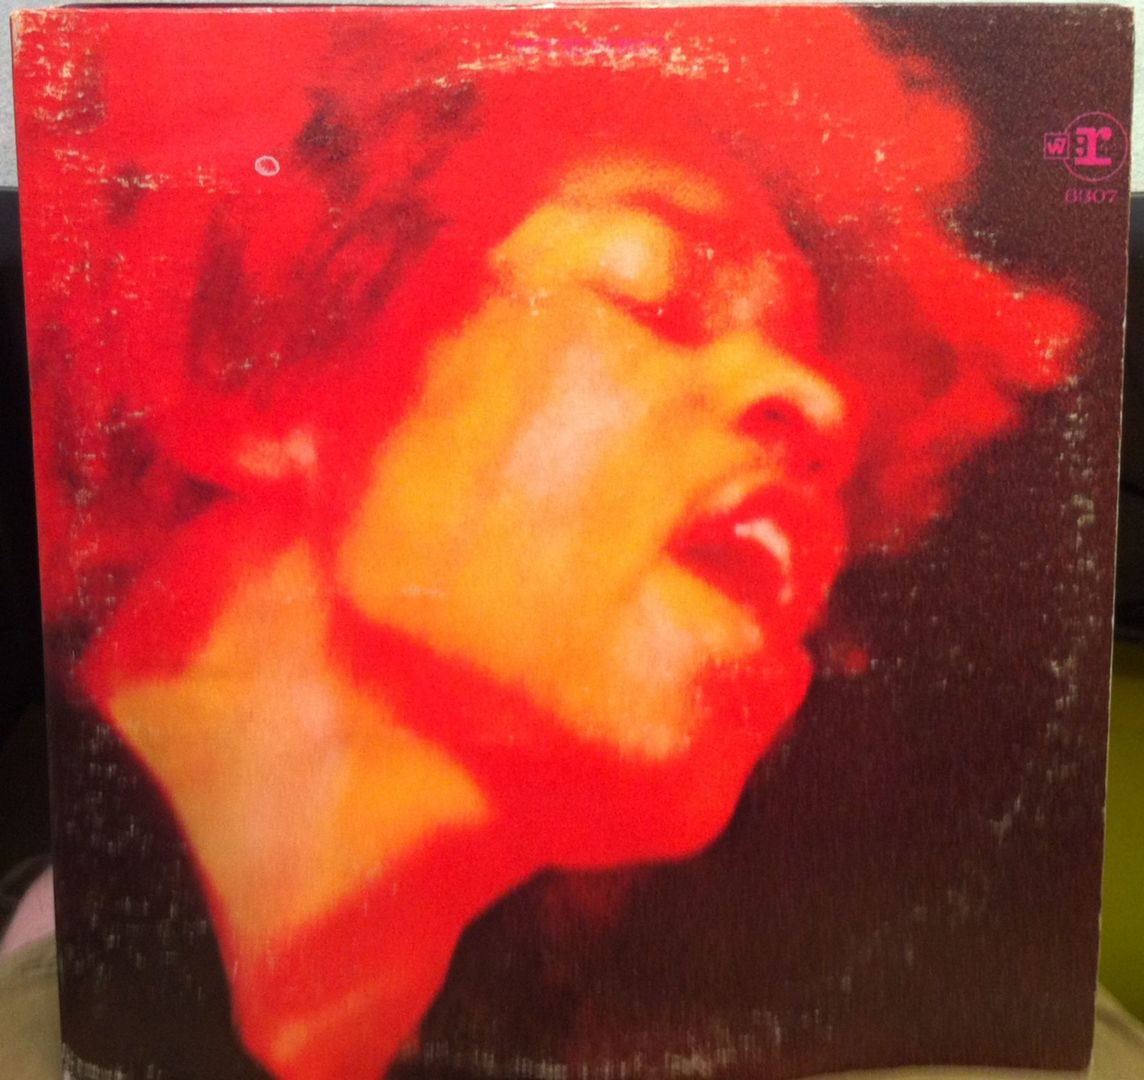 Unverzichtbar: ELECTRIC LADYLAND (Polydor, 1968)